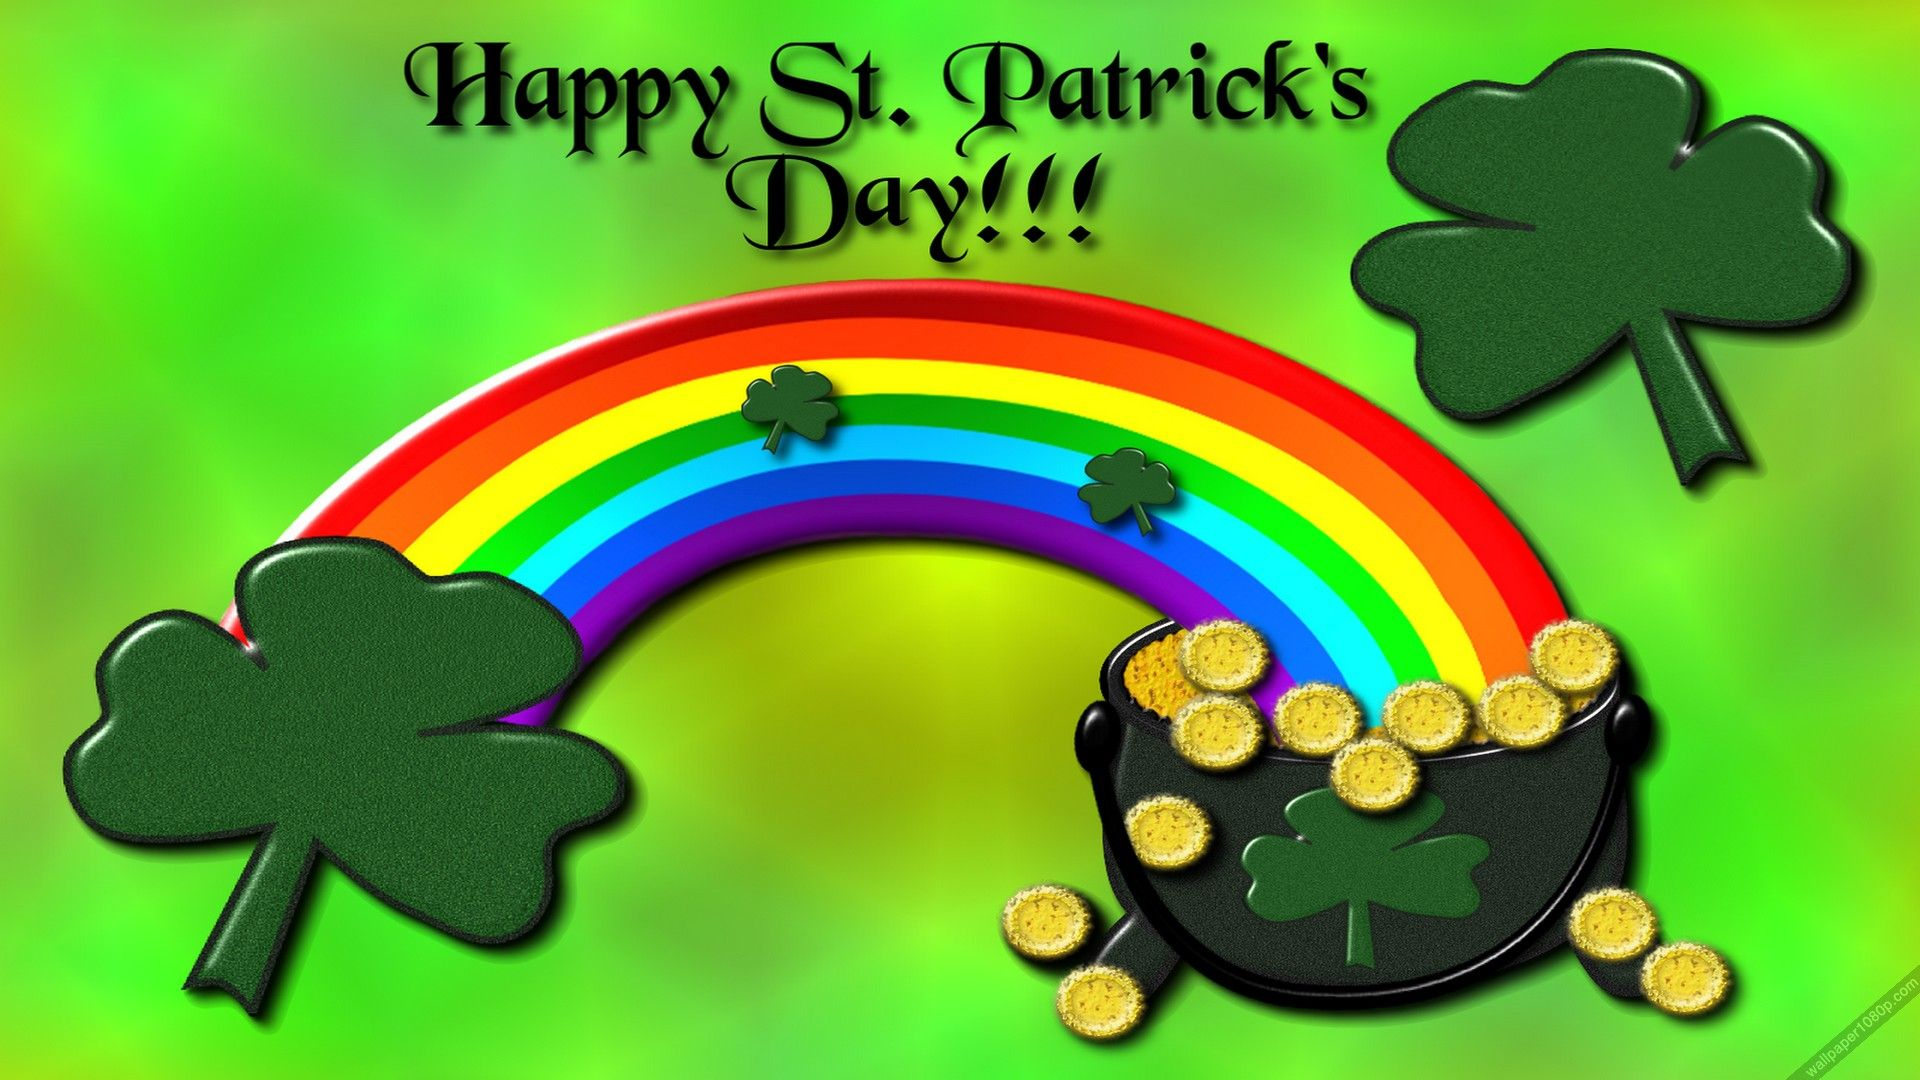 Download St Patrick Wallpaper 39   Wallpaper For your 1920x1080